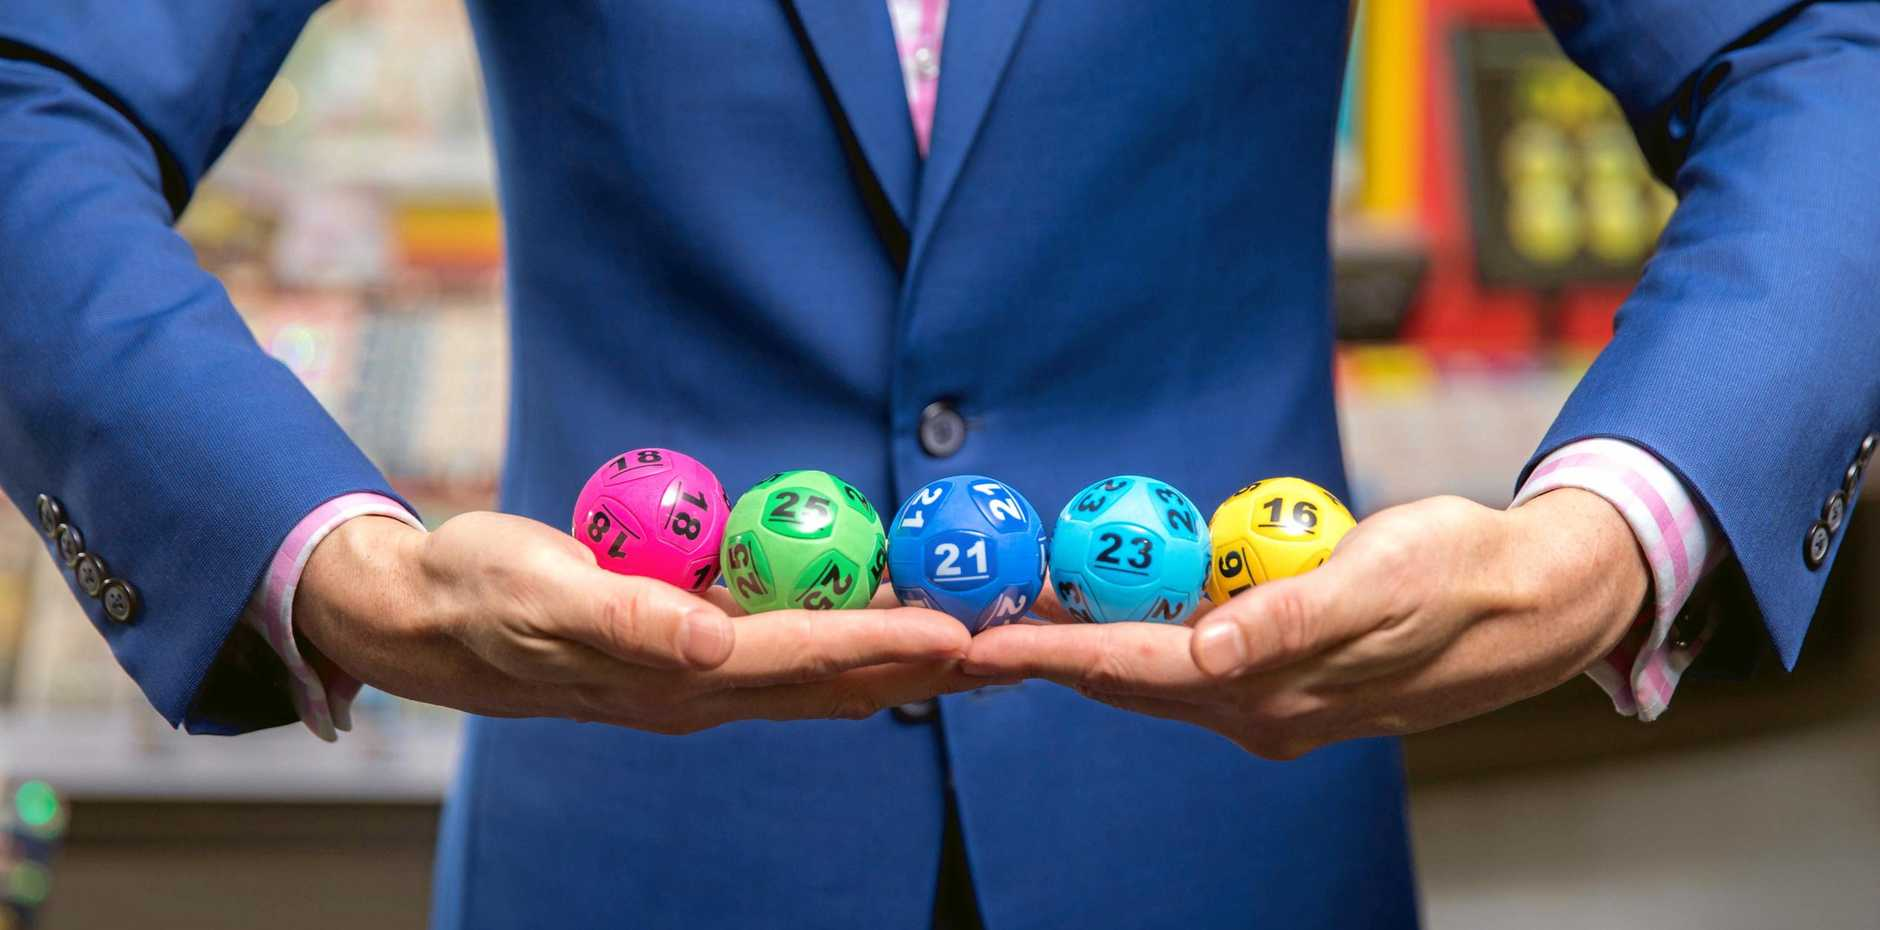 Do you have this week's winning lotto numbers?